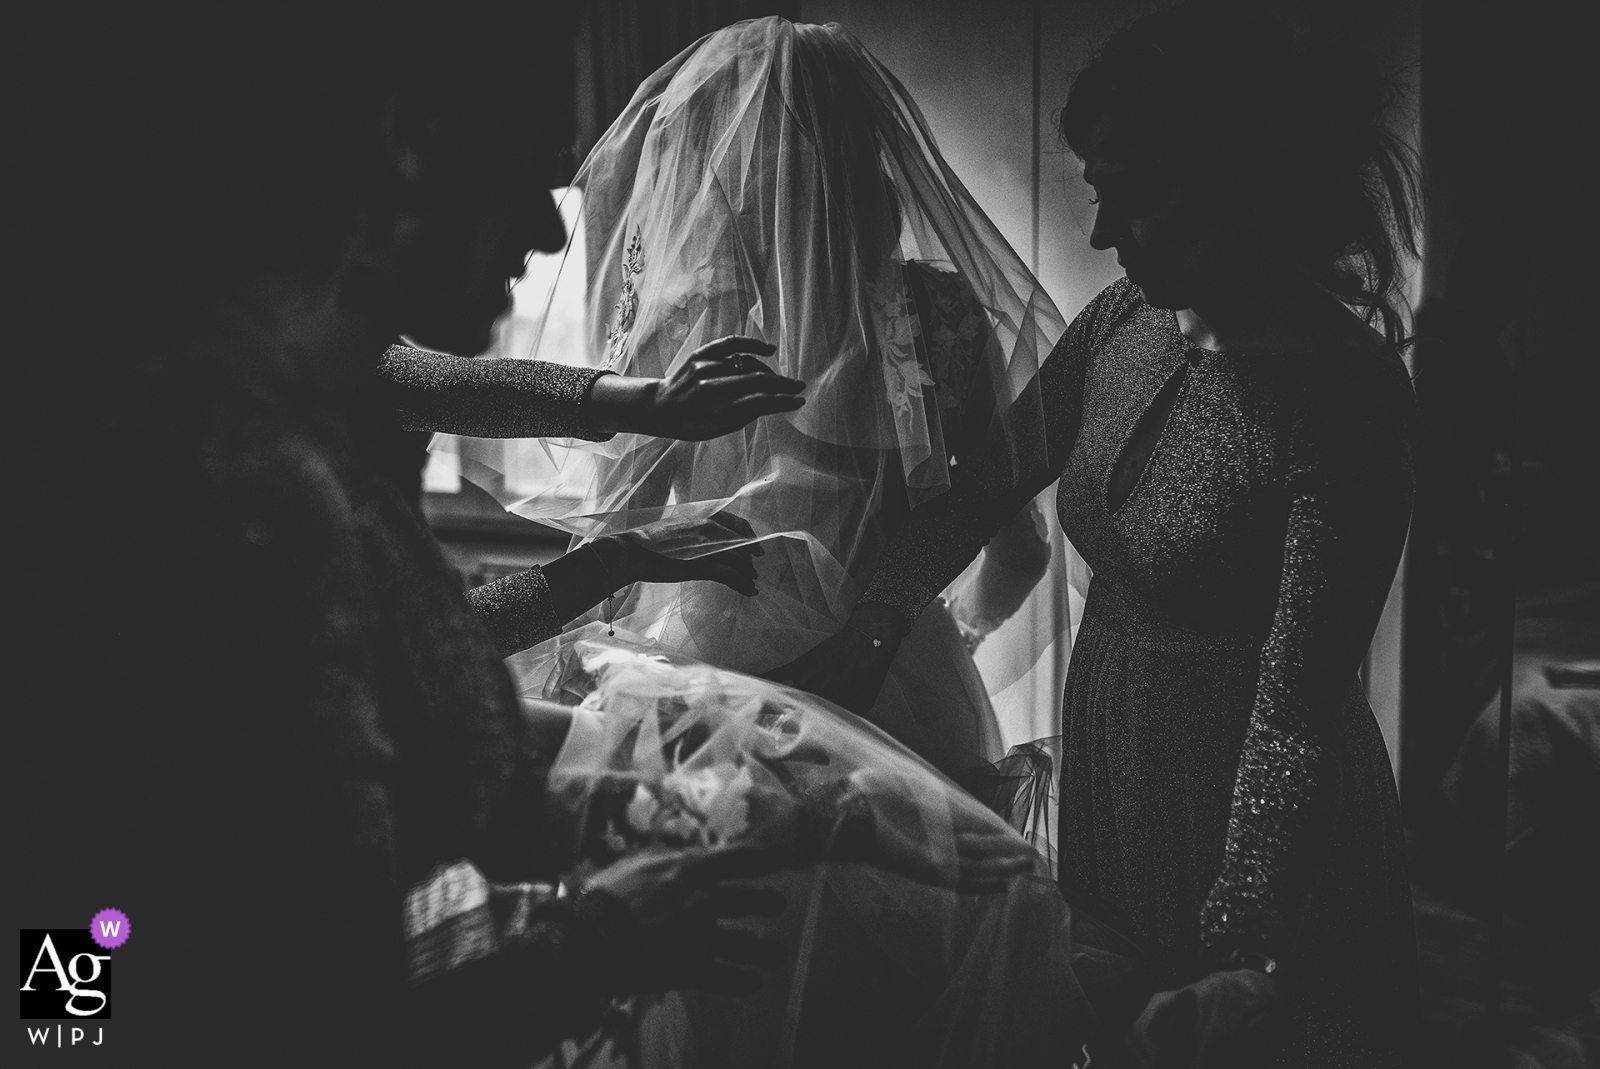 Pisa Black and white wedding photography | getting ready details with the bride and her entourage helping